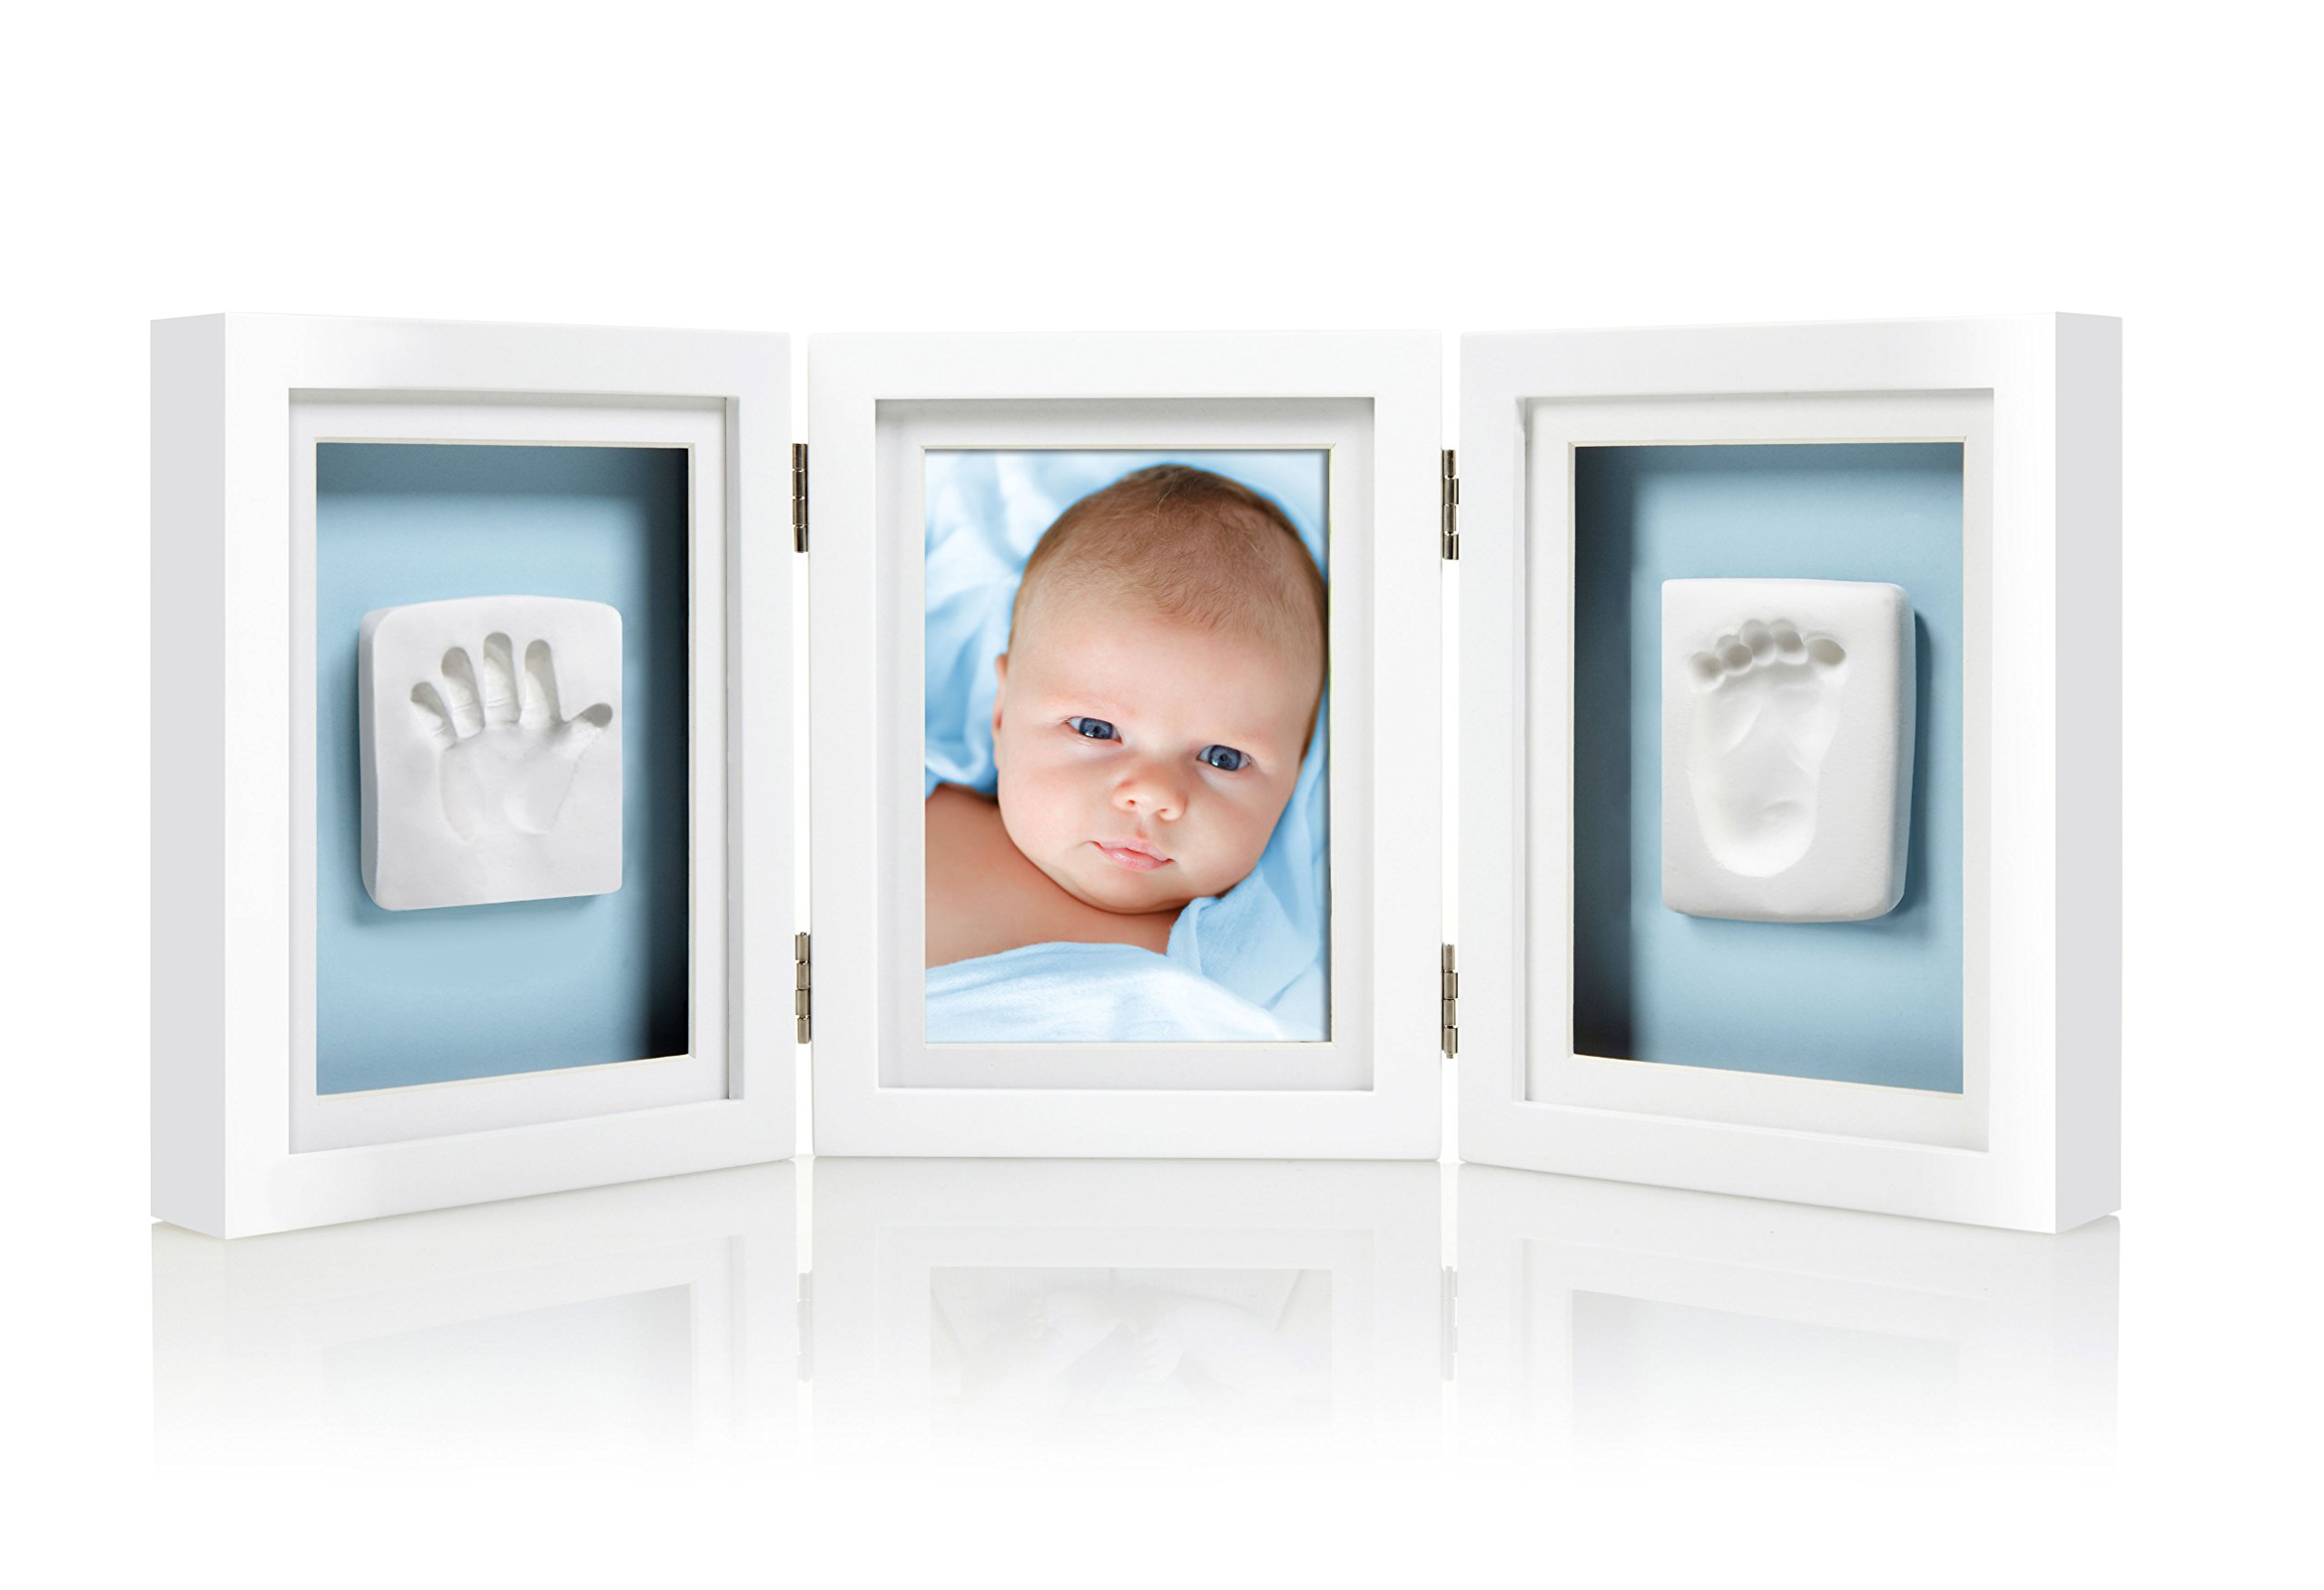 Pearhead Babyprints Newborn Baby Handprint and Footprint Deluxe Desk Photo Frame & Impression Kit - Makes A Perfect Baby Shower Gift, White